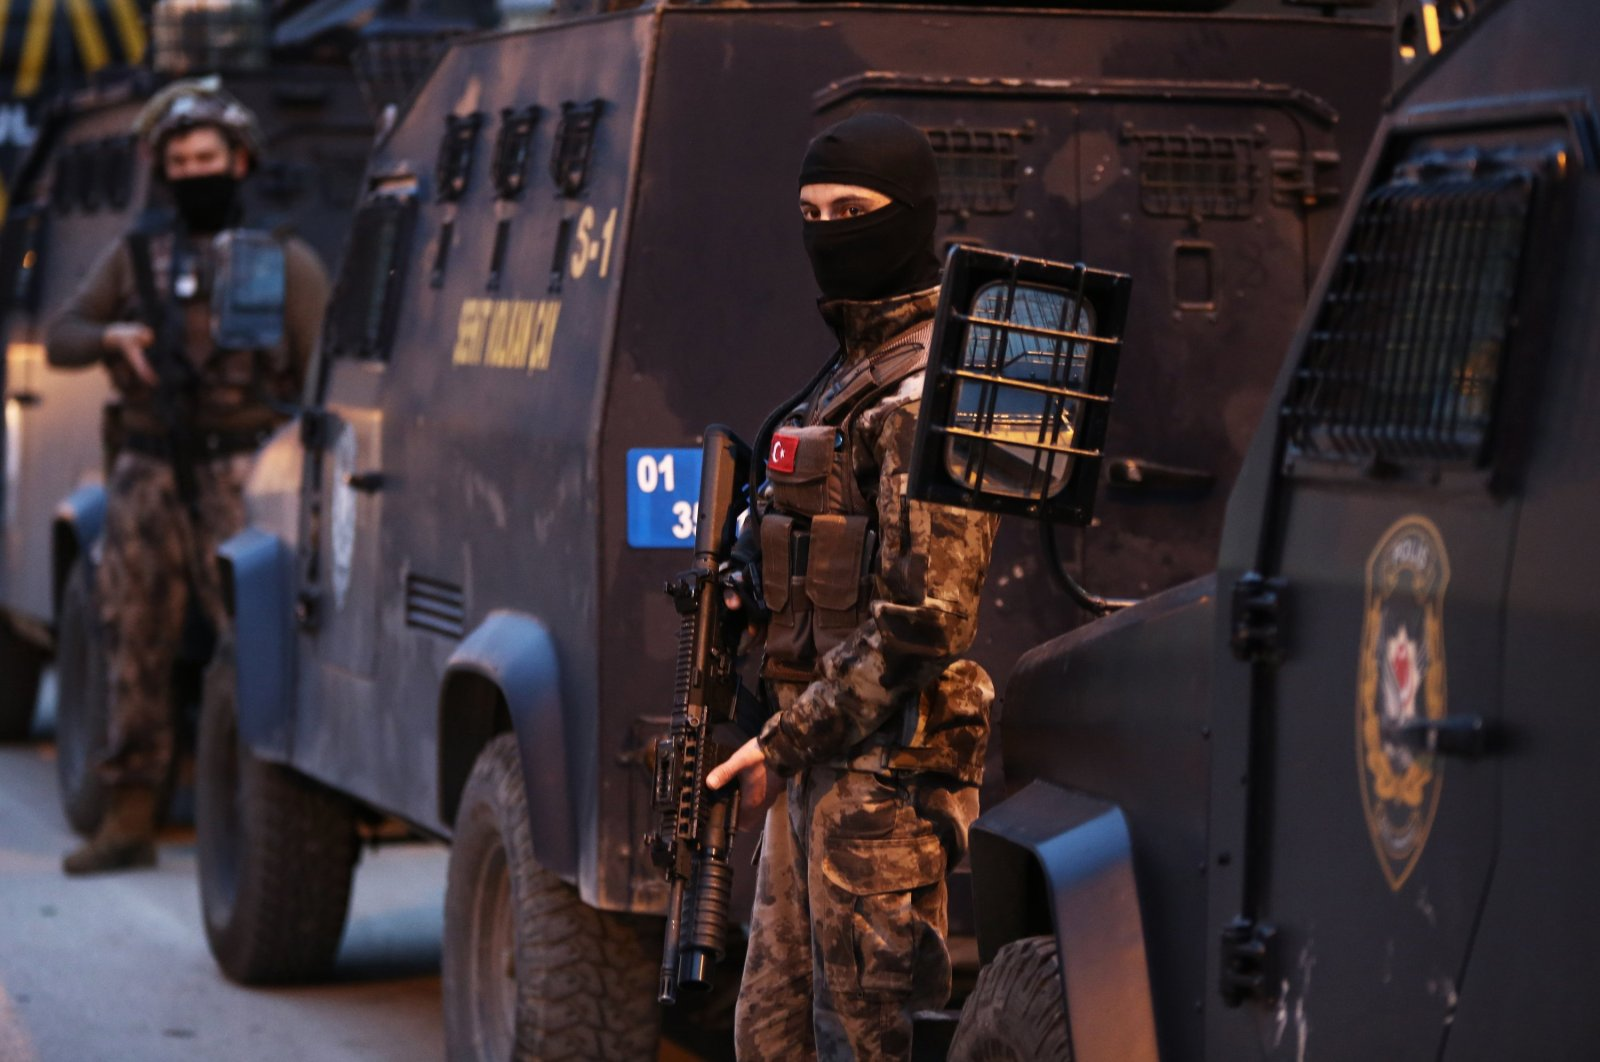 Turkish counterterrorism police carry out raids in Adana province on March 17, 2020 (Sabah File Photo)